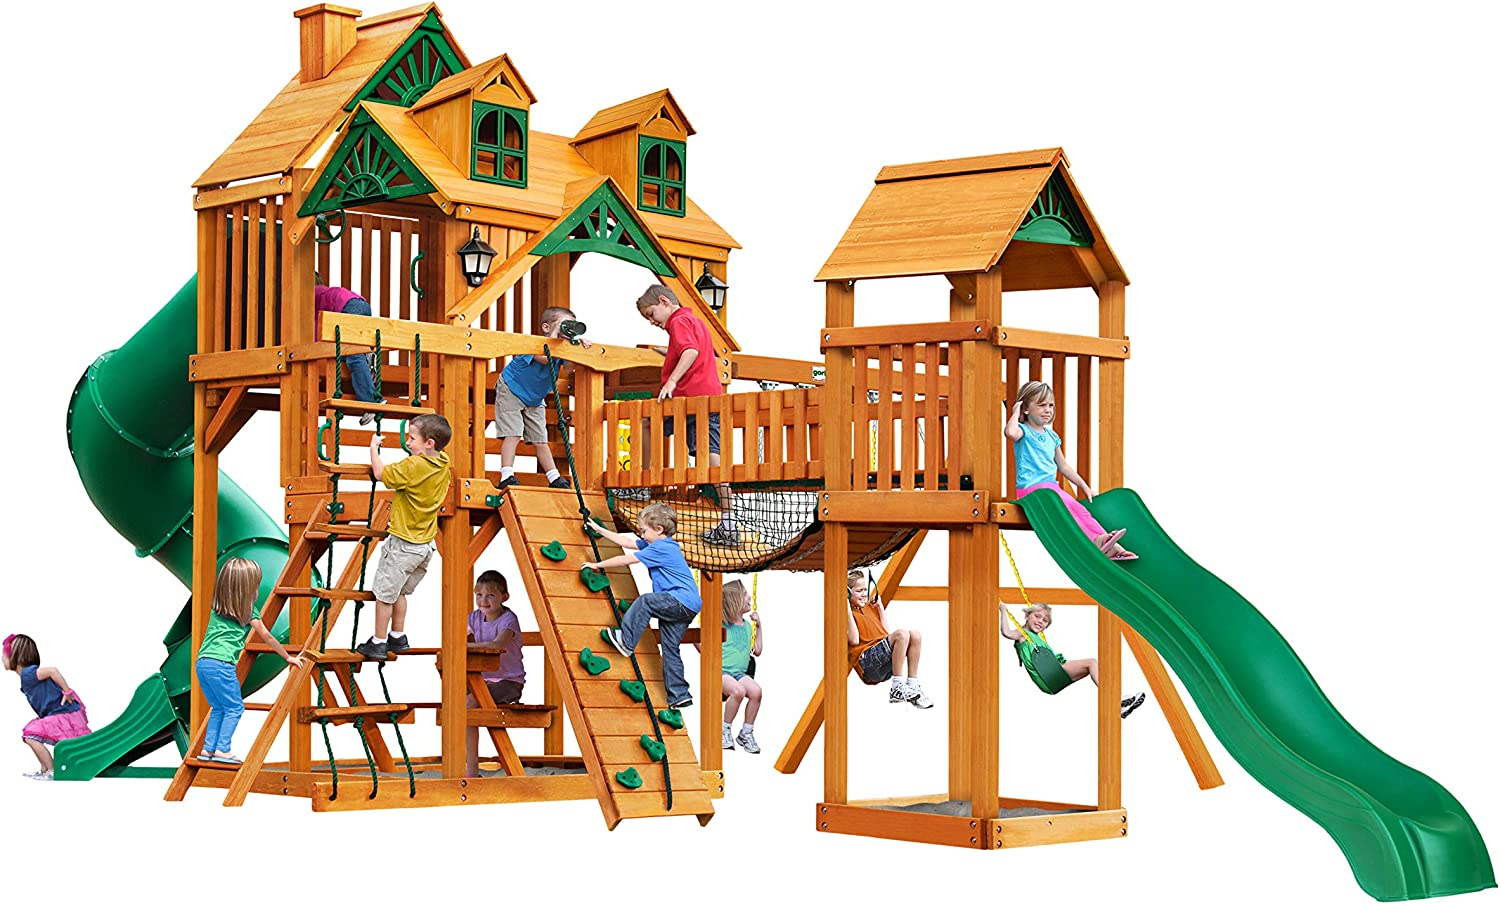 Gorilla Playsets 01-0077-AP Treasure Trove I Wood Swing Set with Malibu Wood Roof, Clatter Bridge & Tower, and Rock Wall